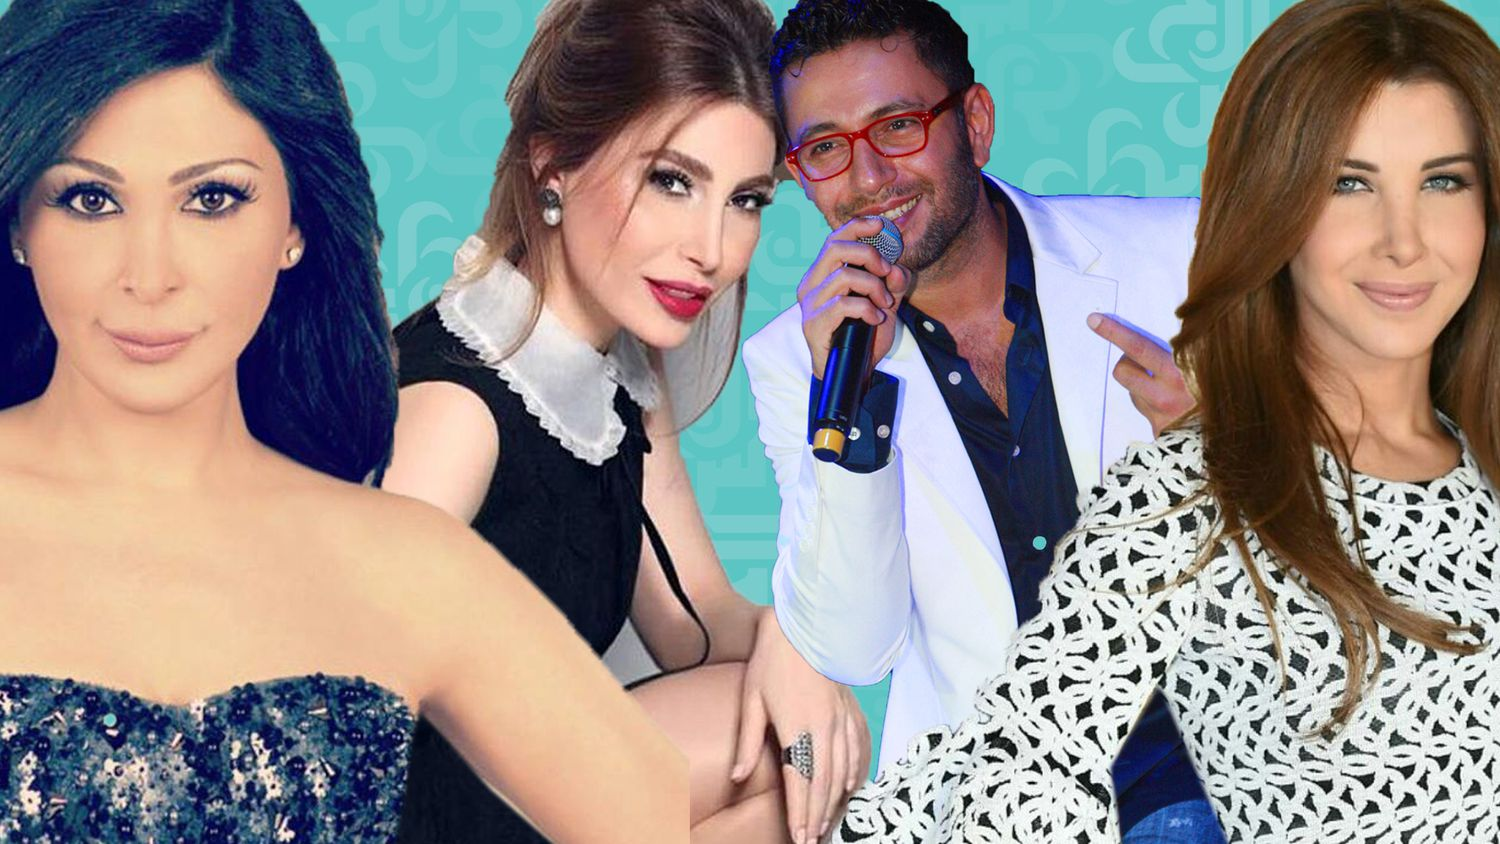 Who Is The #1 Lebanese Singer Elissa, Nancy, Yara or Ziad Bourji?